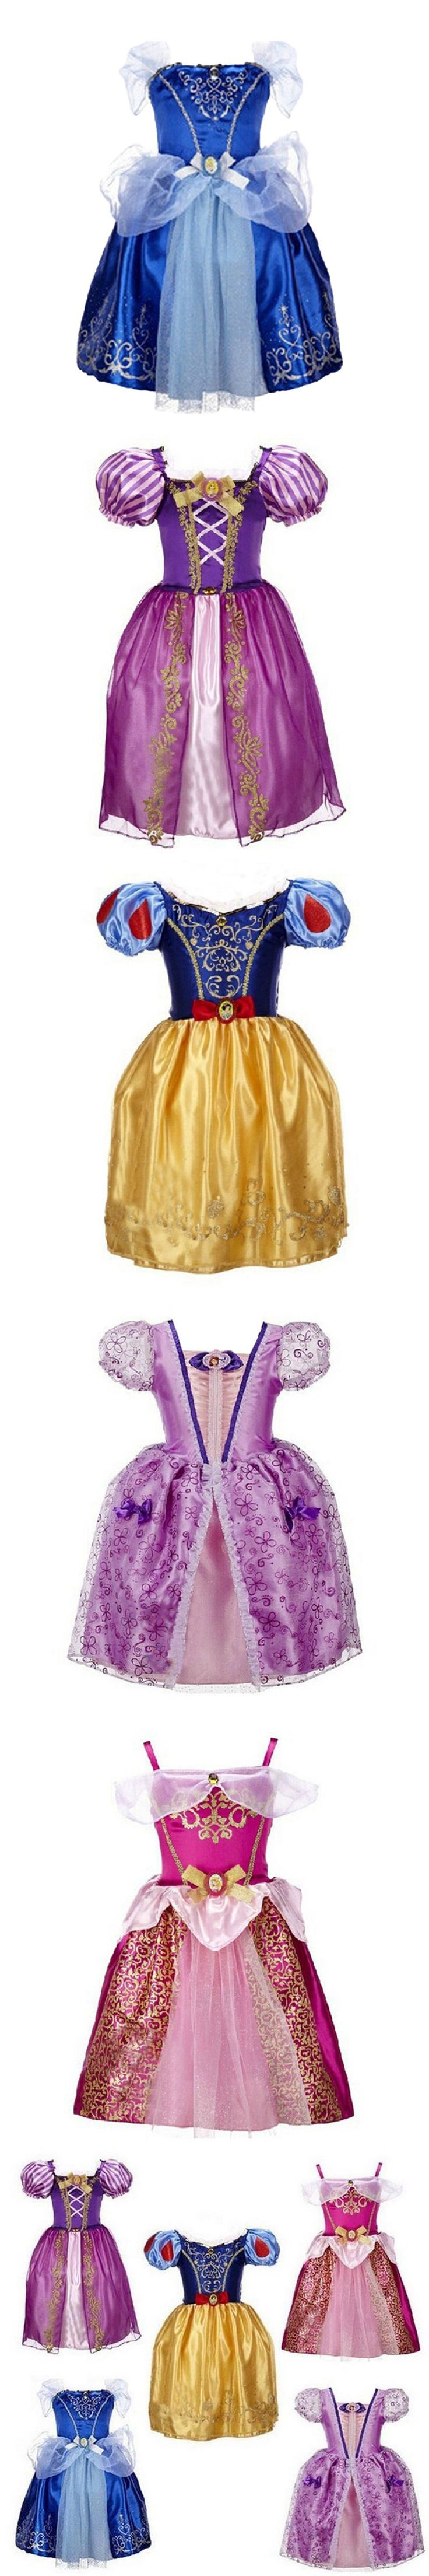 New Girls Cinderella Dresses Children Snow White Princess Dresses Rapunzel Aurora Kids Party Halloween Costume Clothes $9.7